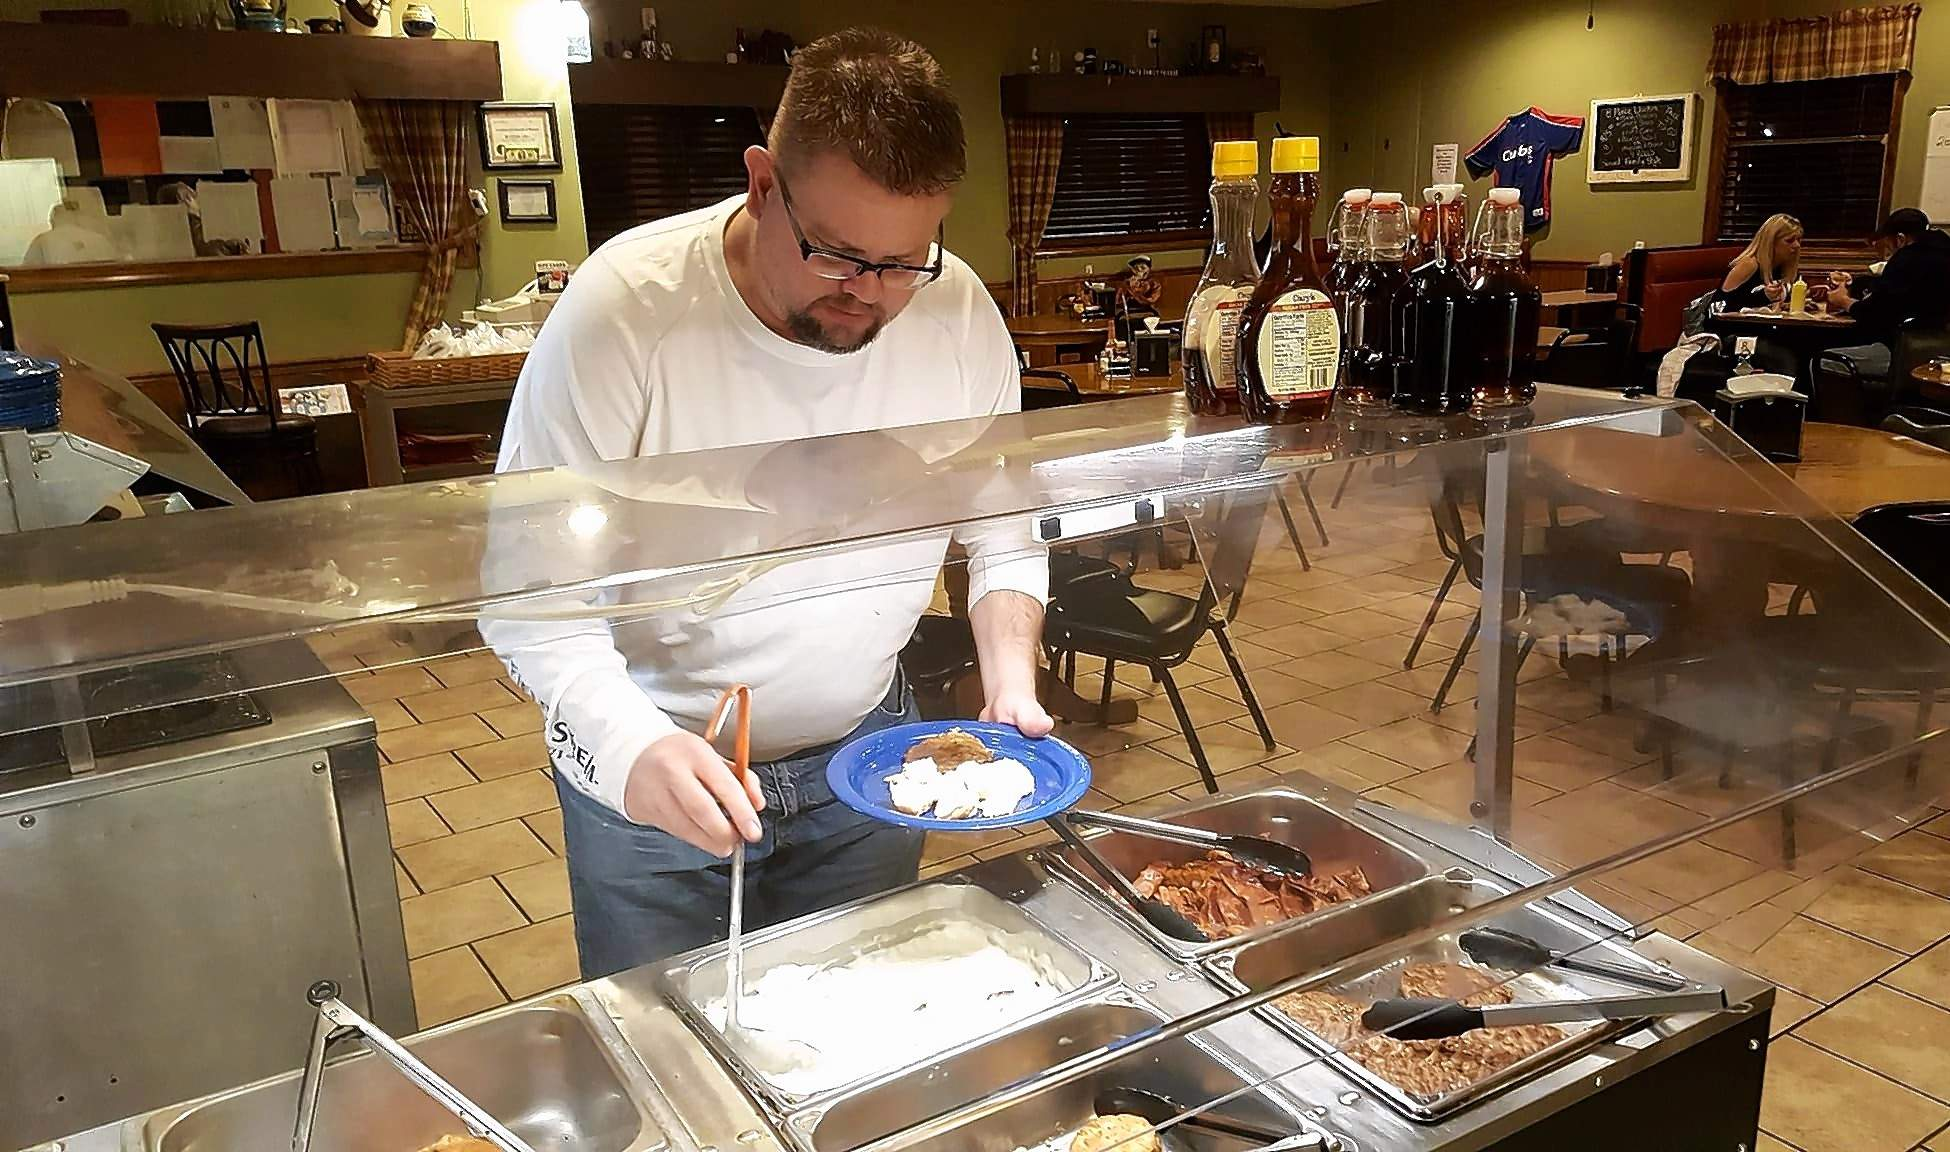 Michael McGuire, who describes himself as a 'multiple buffet user,' recently enjoyed his second consecutive night at the Bonz Fire Grill's new all-night breakfast buffet. Responding to customer suggestions on Facebook, the Benton eatery decided to give an affordable all-night buffet a chance, offering the $5 buffet as well as the regular menu Friday and Saturday evenings from 10 until 5 p.m. 'I like it a lot,' McGuire said, filling his second plate with homemade biscuits and gravy. 'It's got everything I like to eat. I ate it last night, too.'